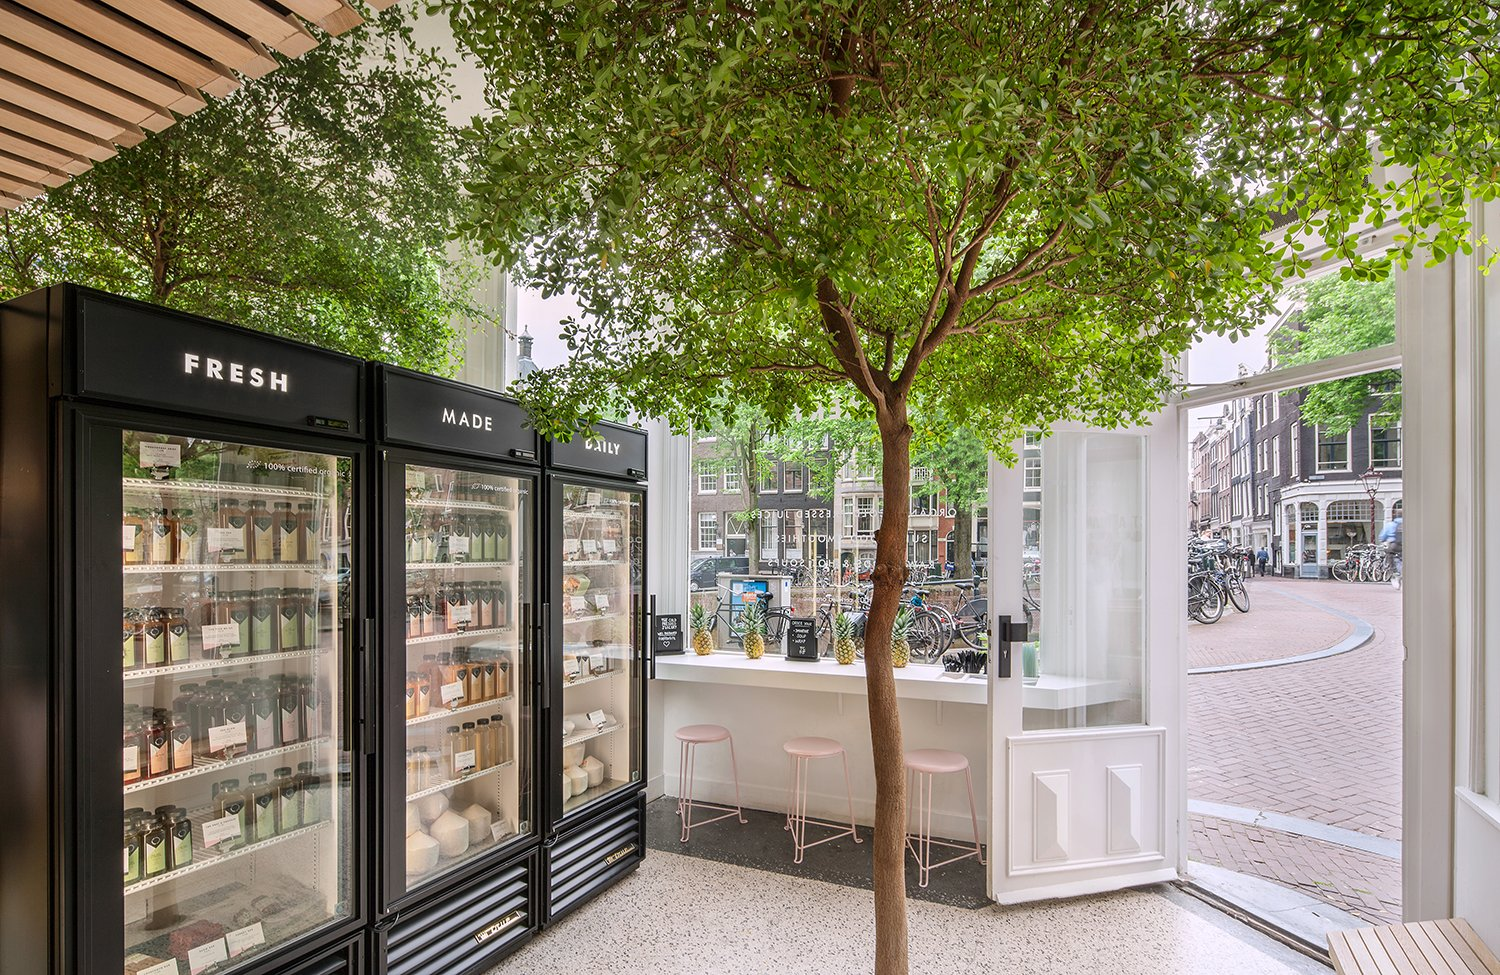 In Amsterdam's Nine Streets neighborhood, the roughly 250-square-foot shop of Cold Pressed Juicery showcases a vibrant tree in the middle of the space. Photo by Wouter van der Sar.  Photo 6 of 7 in A Tree Grows in Amsterdam